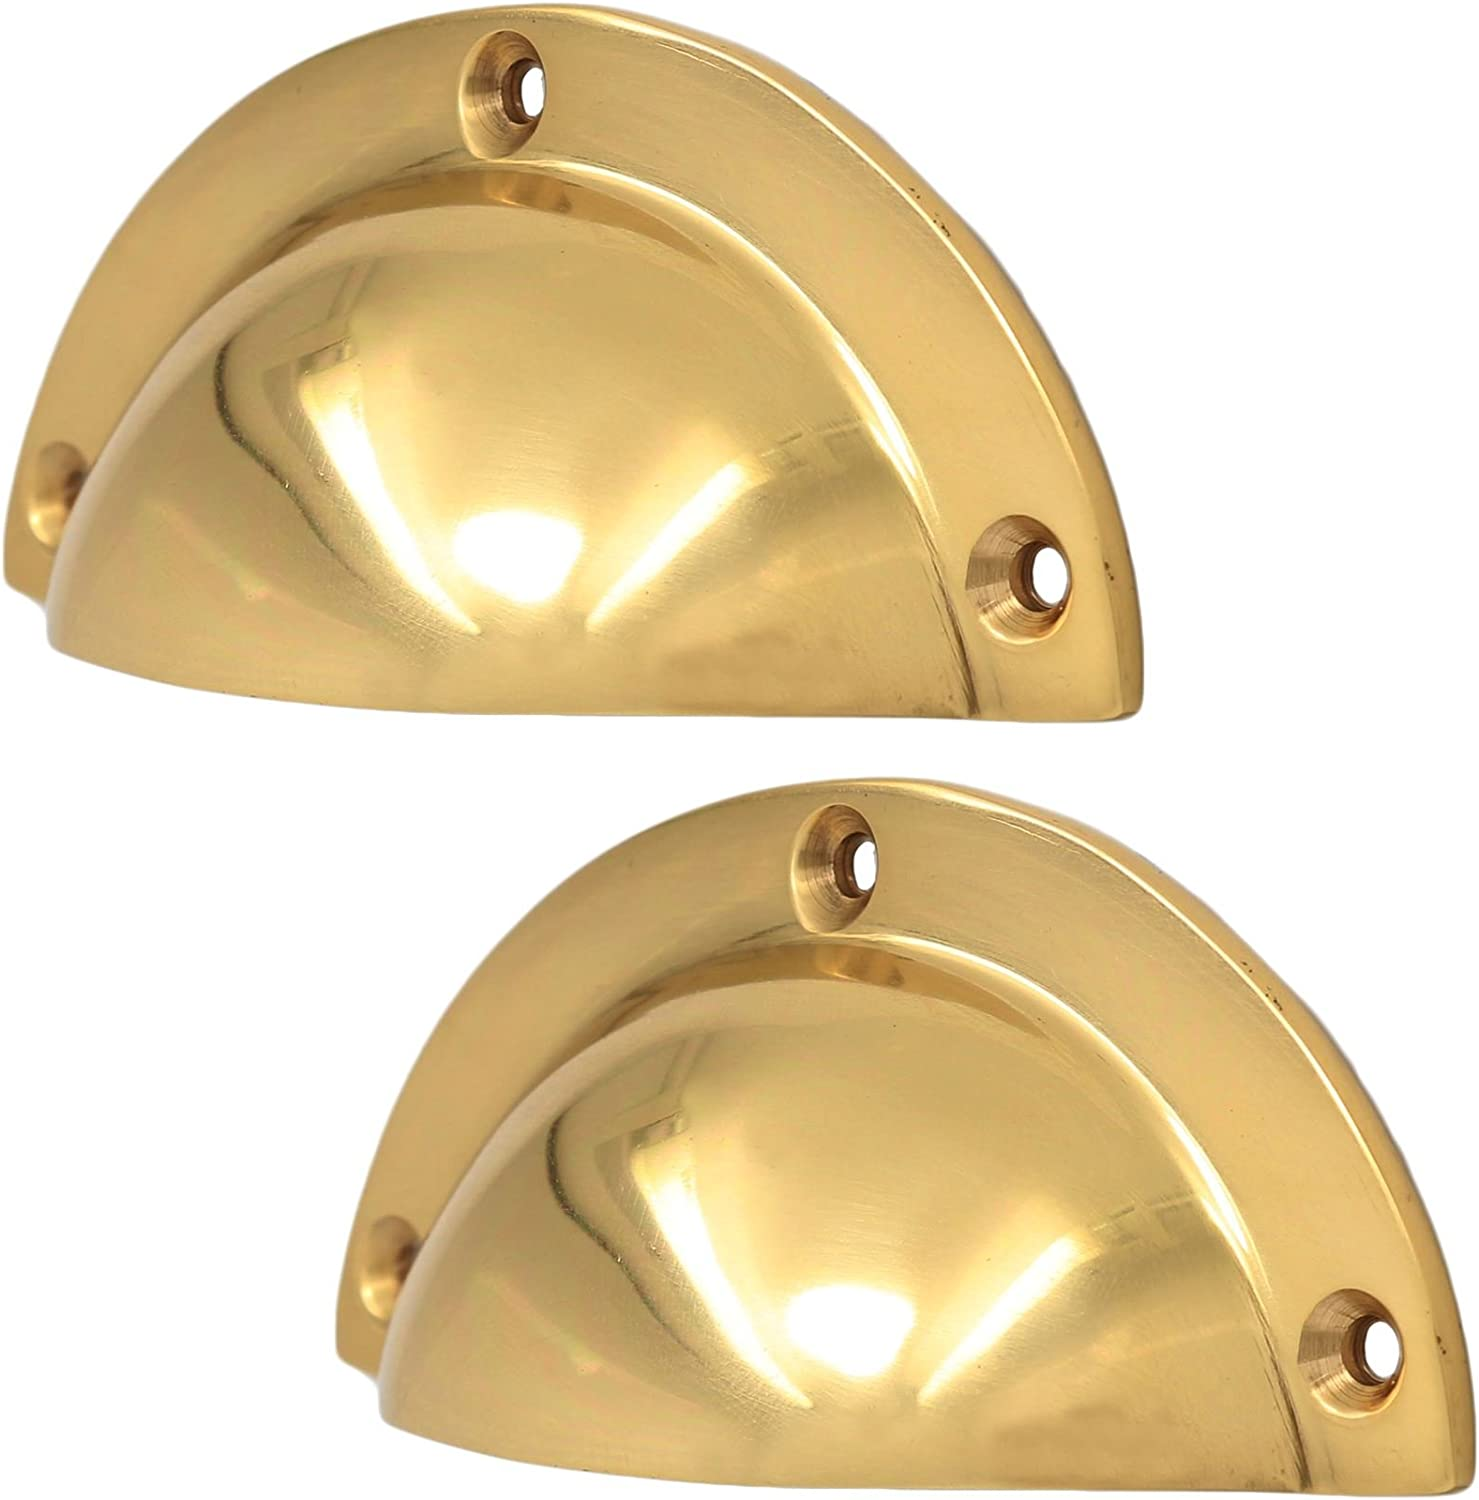 Home Use 2x  Drawer Cabinet Cup Door Handles Knobs Cupboard Shell Pulls Hardware